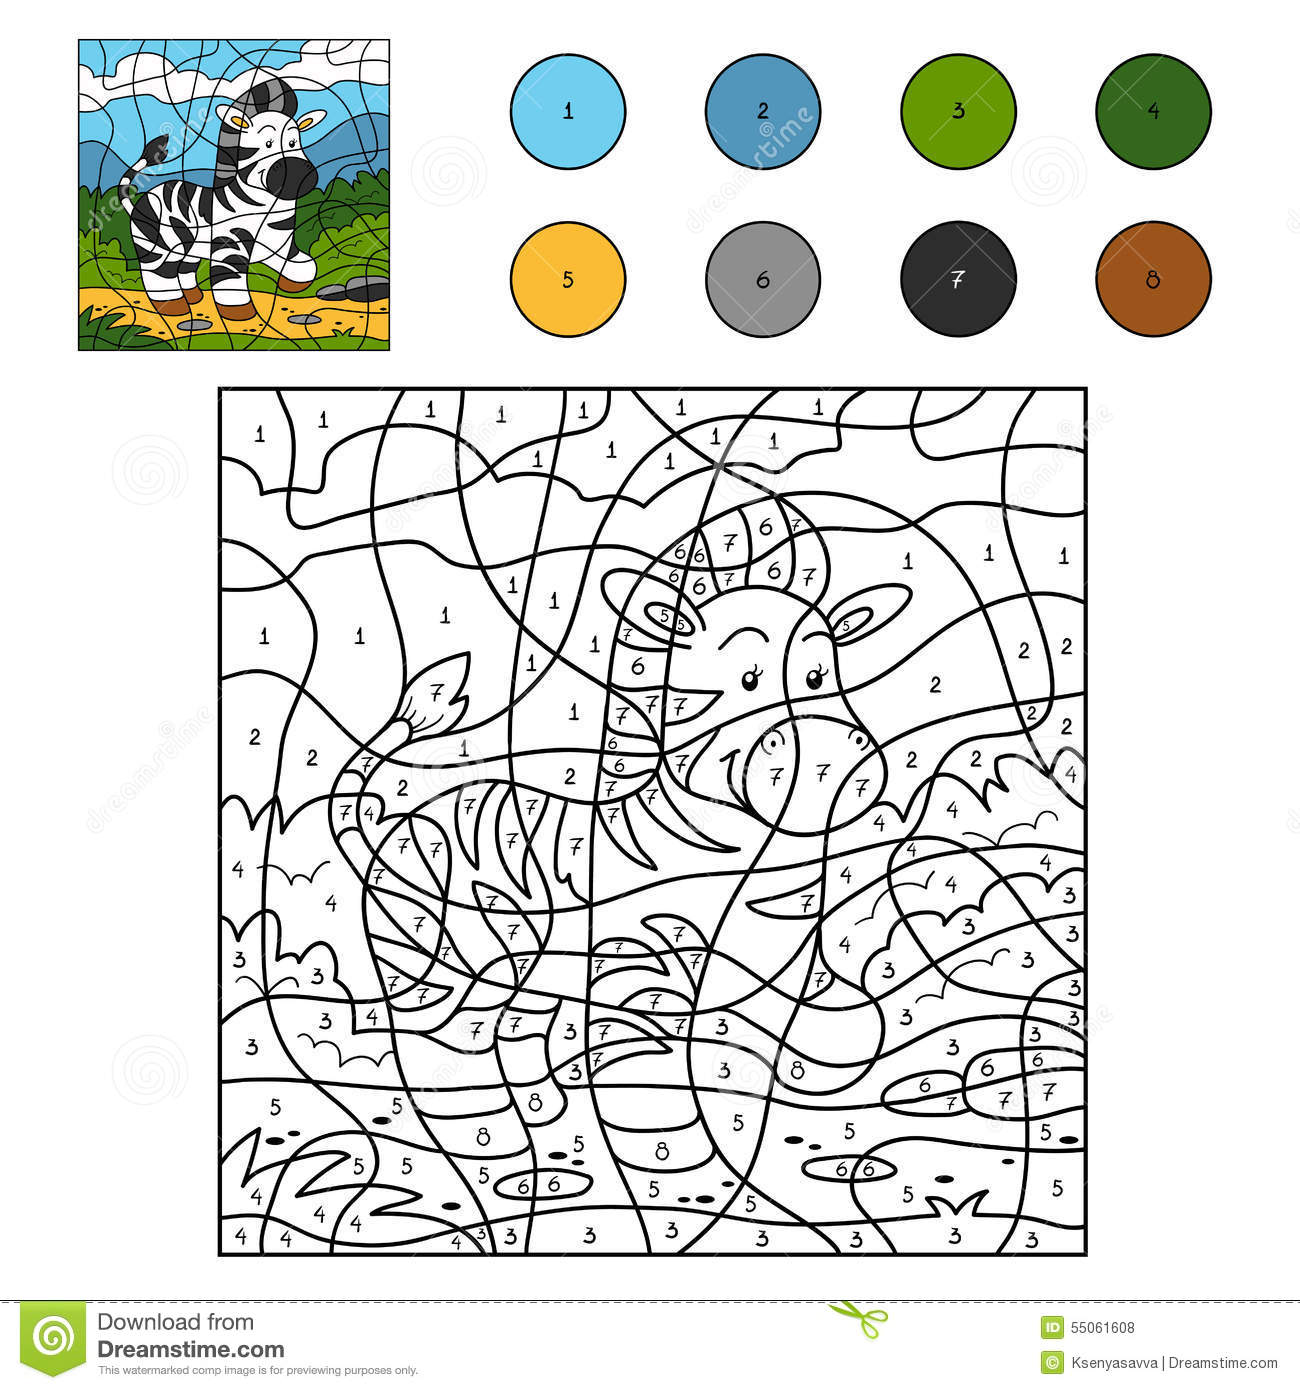 Color by number (zebra) stock vector. Illustration of animal - 55061608